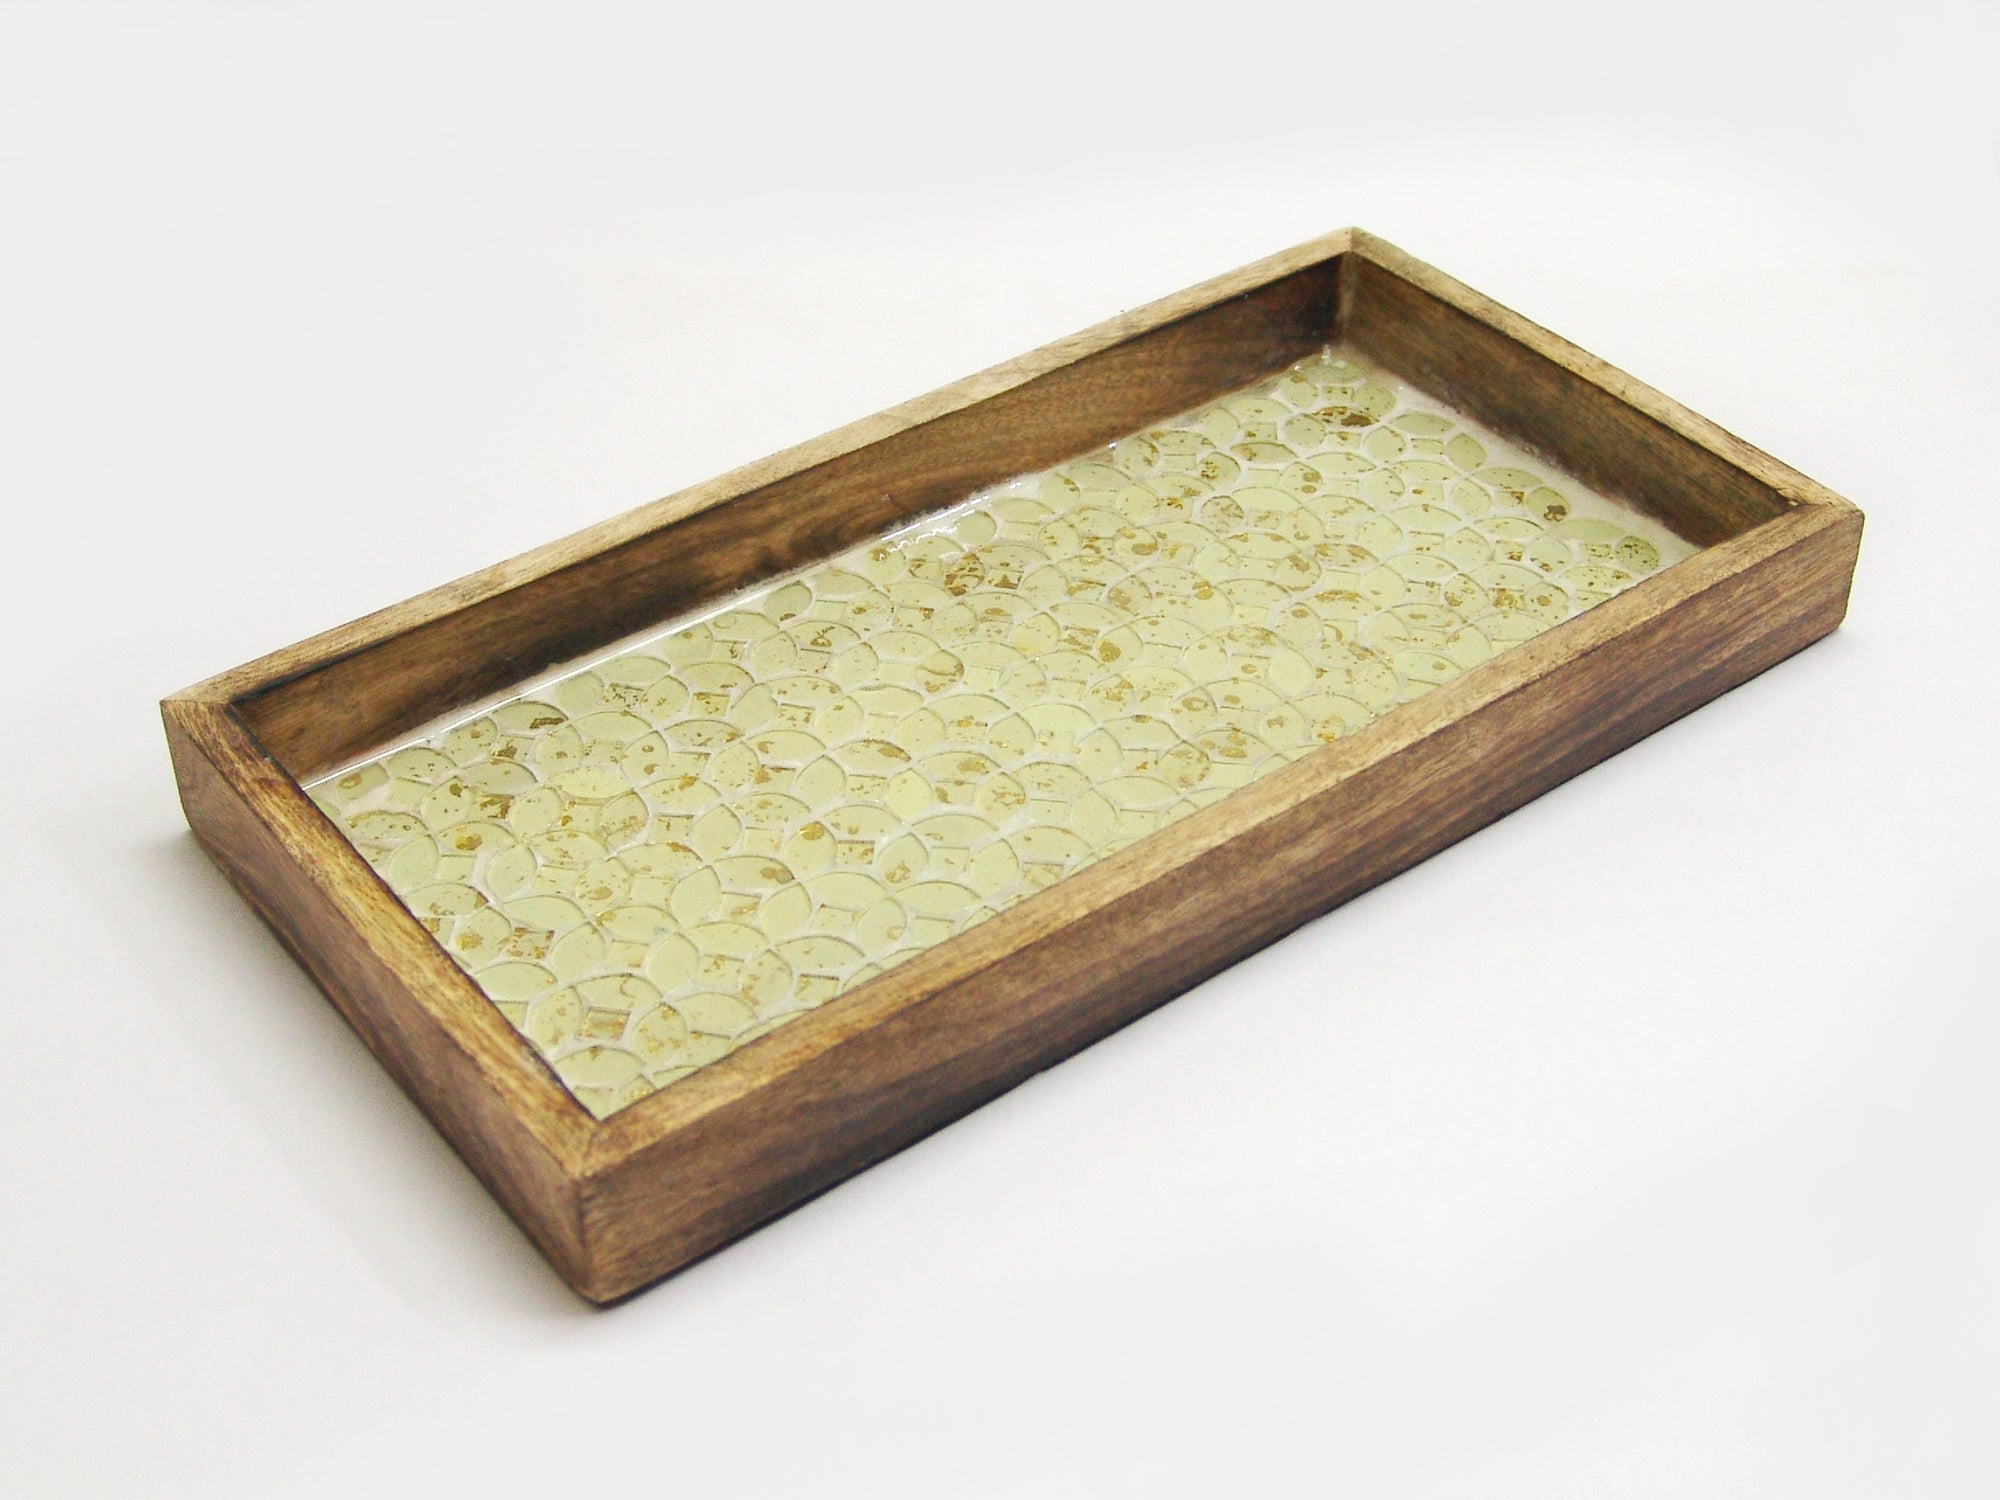 GOLD MOSAIC WOODEN TRAY TR-249 - Nusteel